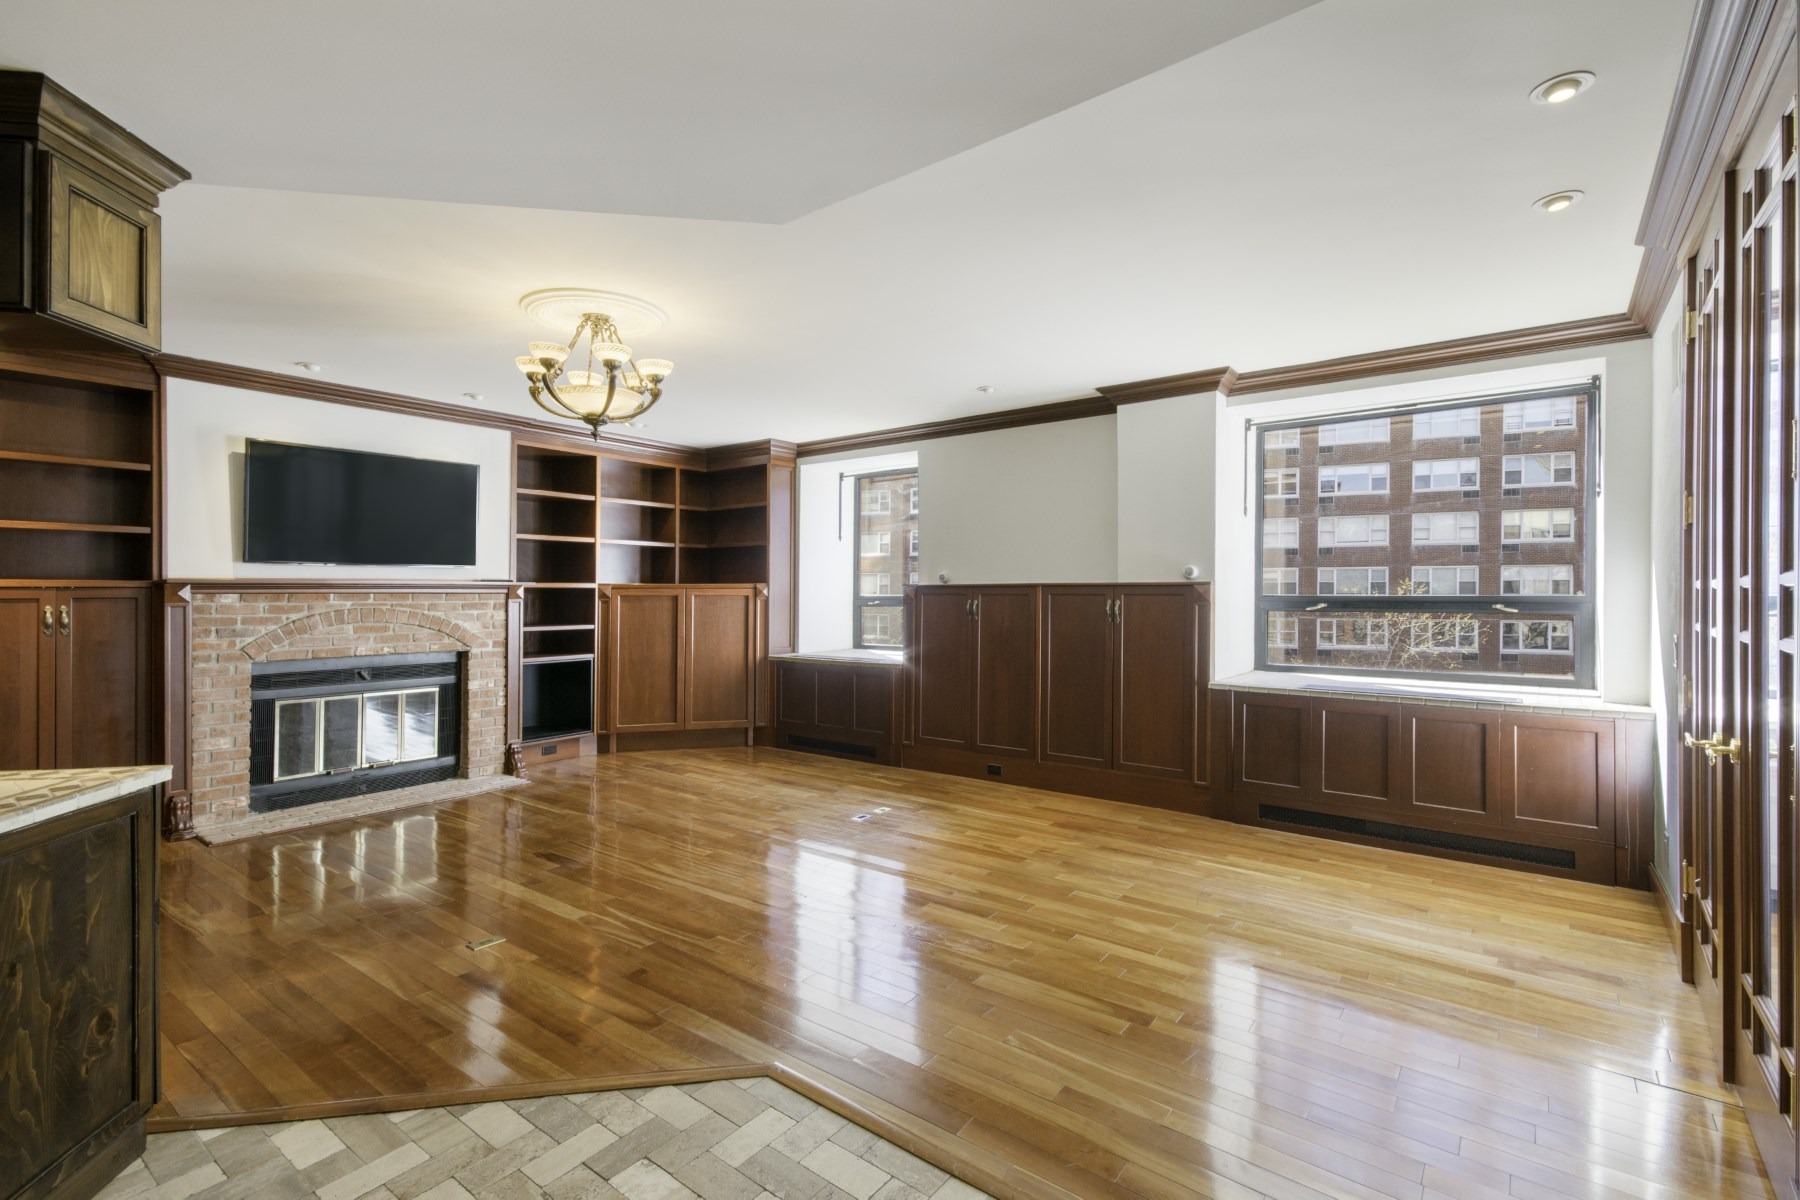 Co-op for Sale at 196 Sixth Avenue, 3A 196 Sixth Avenue Apt 3A Soho, New York, New York, 10013 United States